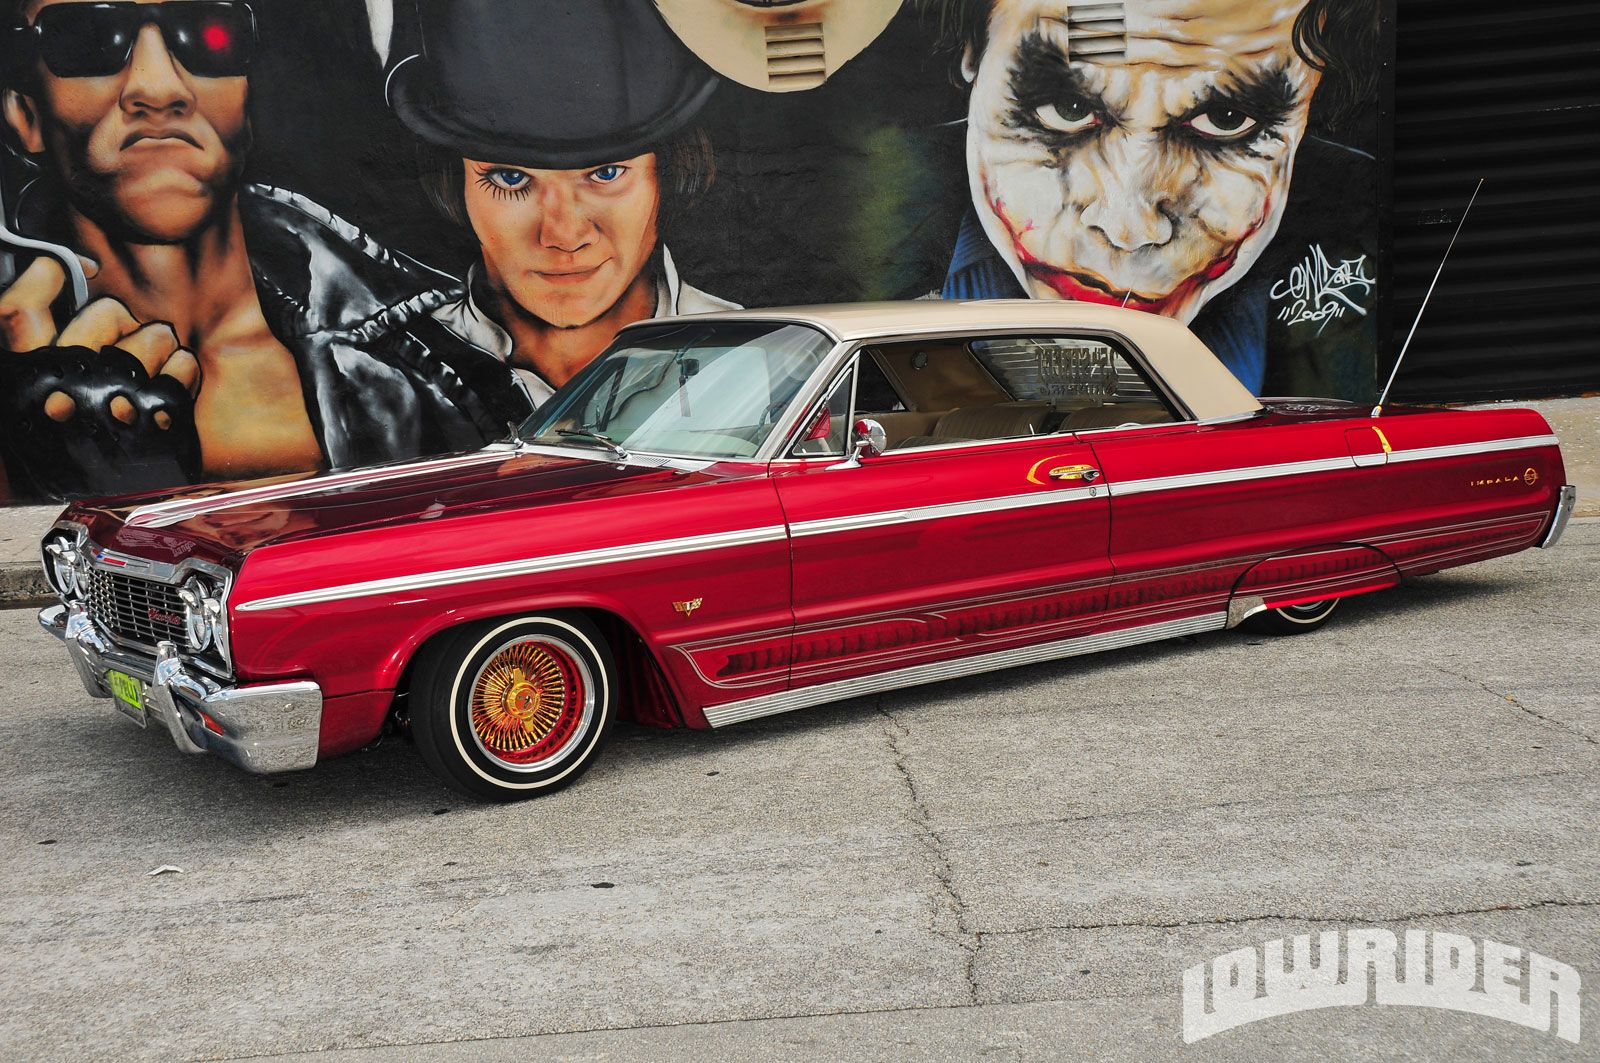 Check out 25th street riders member carlos cruz s 1964 chevrolet impala ss carlos s impala is